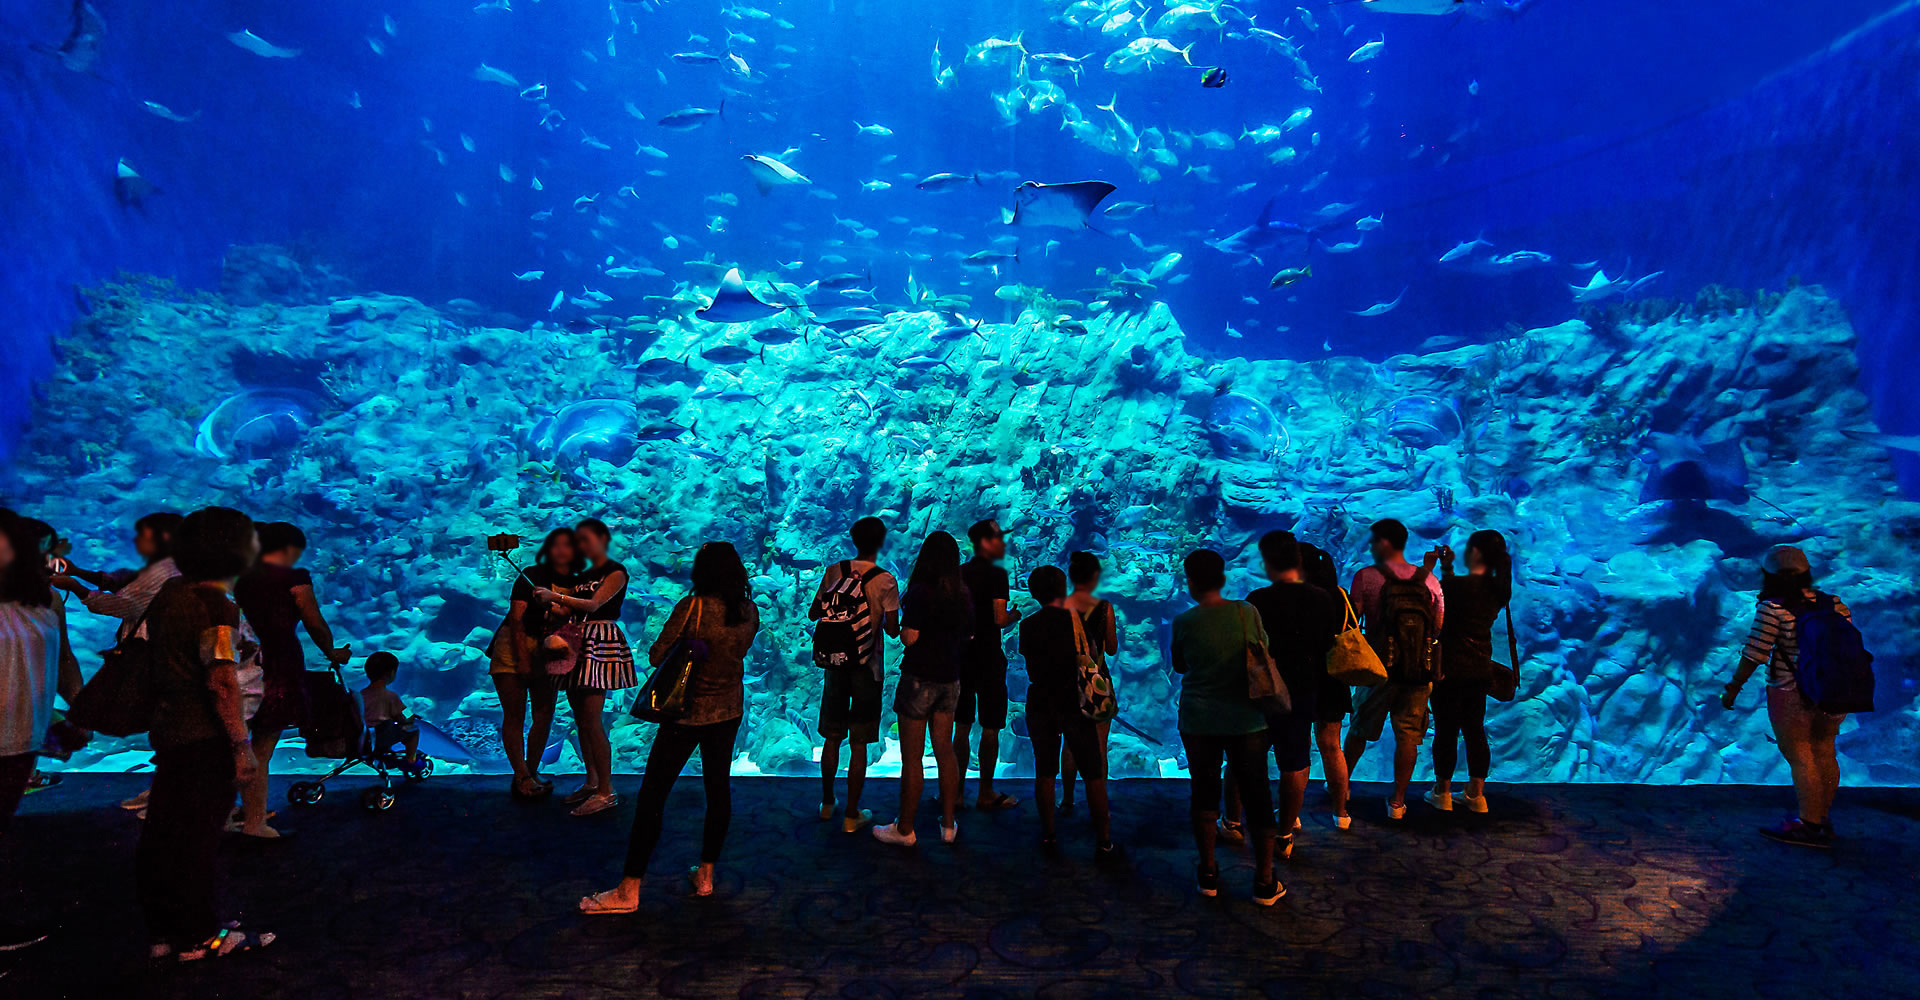 https://media.oceanpark.com.hk/files/s3fs-public/GrandAquarium_04.jpg